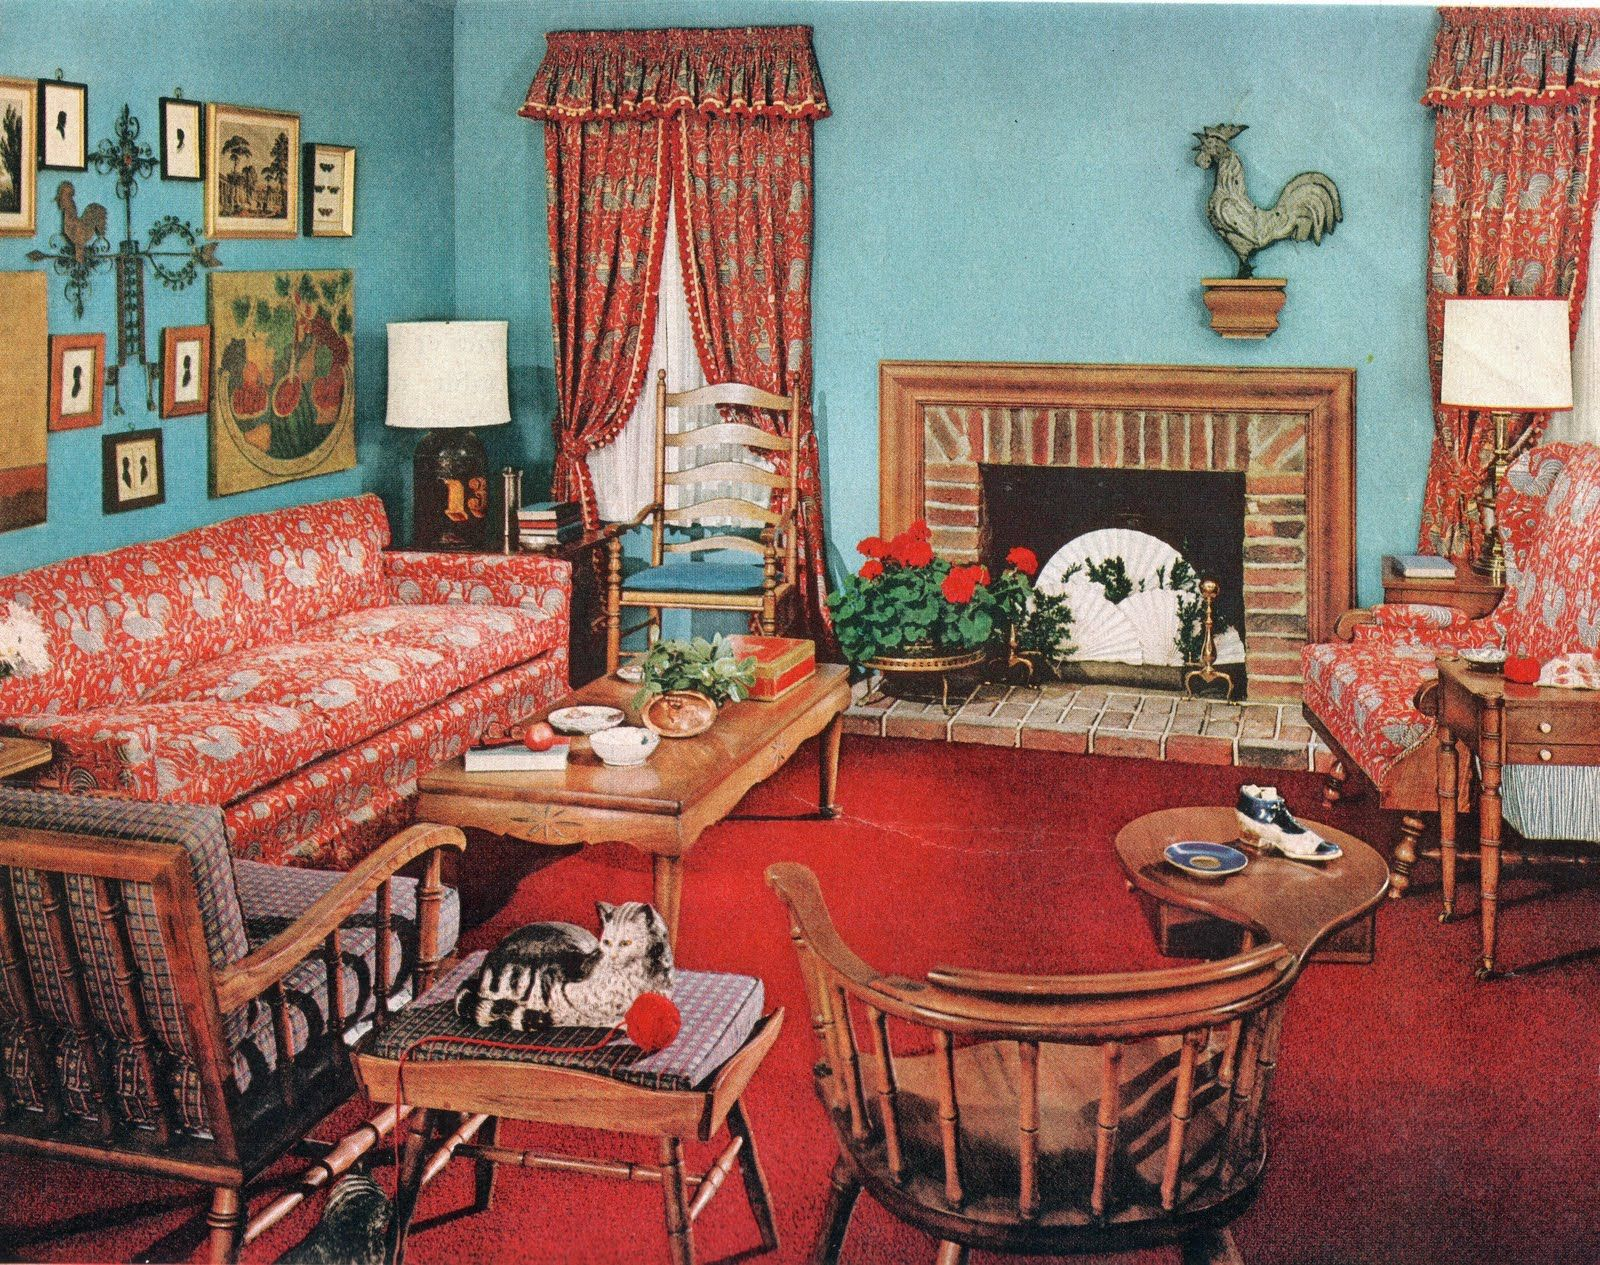 early american 1950 39 s living room lots of hard rock maple home decor 30 39 s 50s 1940s. Black Bedroom Furniture Sets. Home Design Ideas